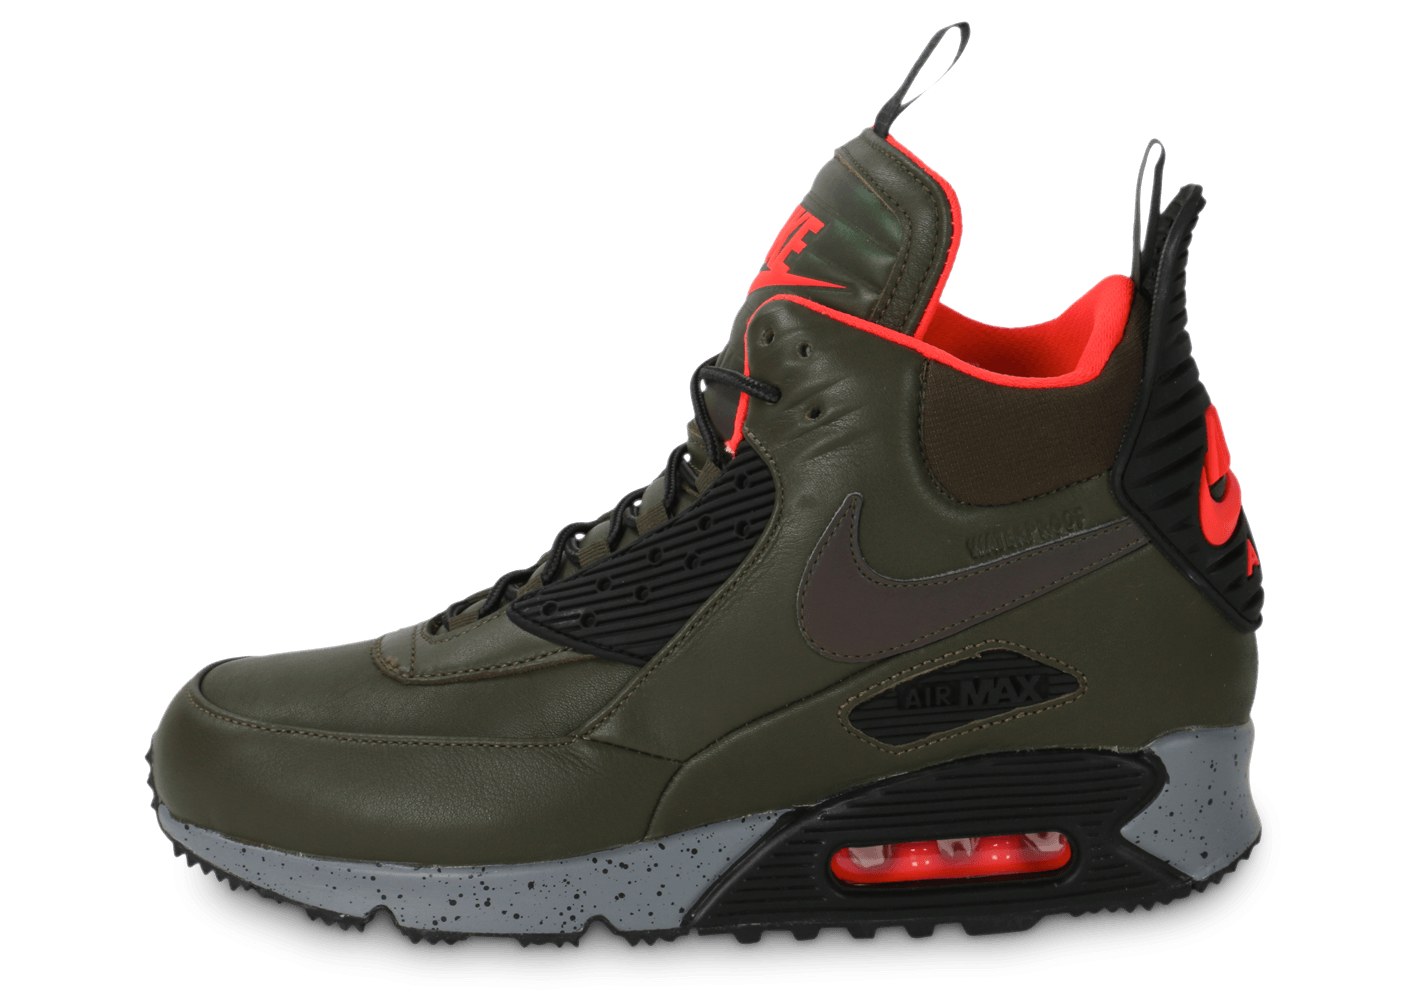 Air 90 Sneakerboot Winter Nike Kaki Max 8PXn0Owk